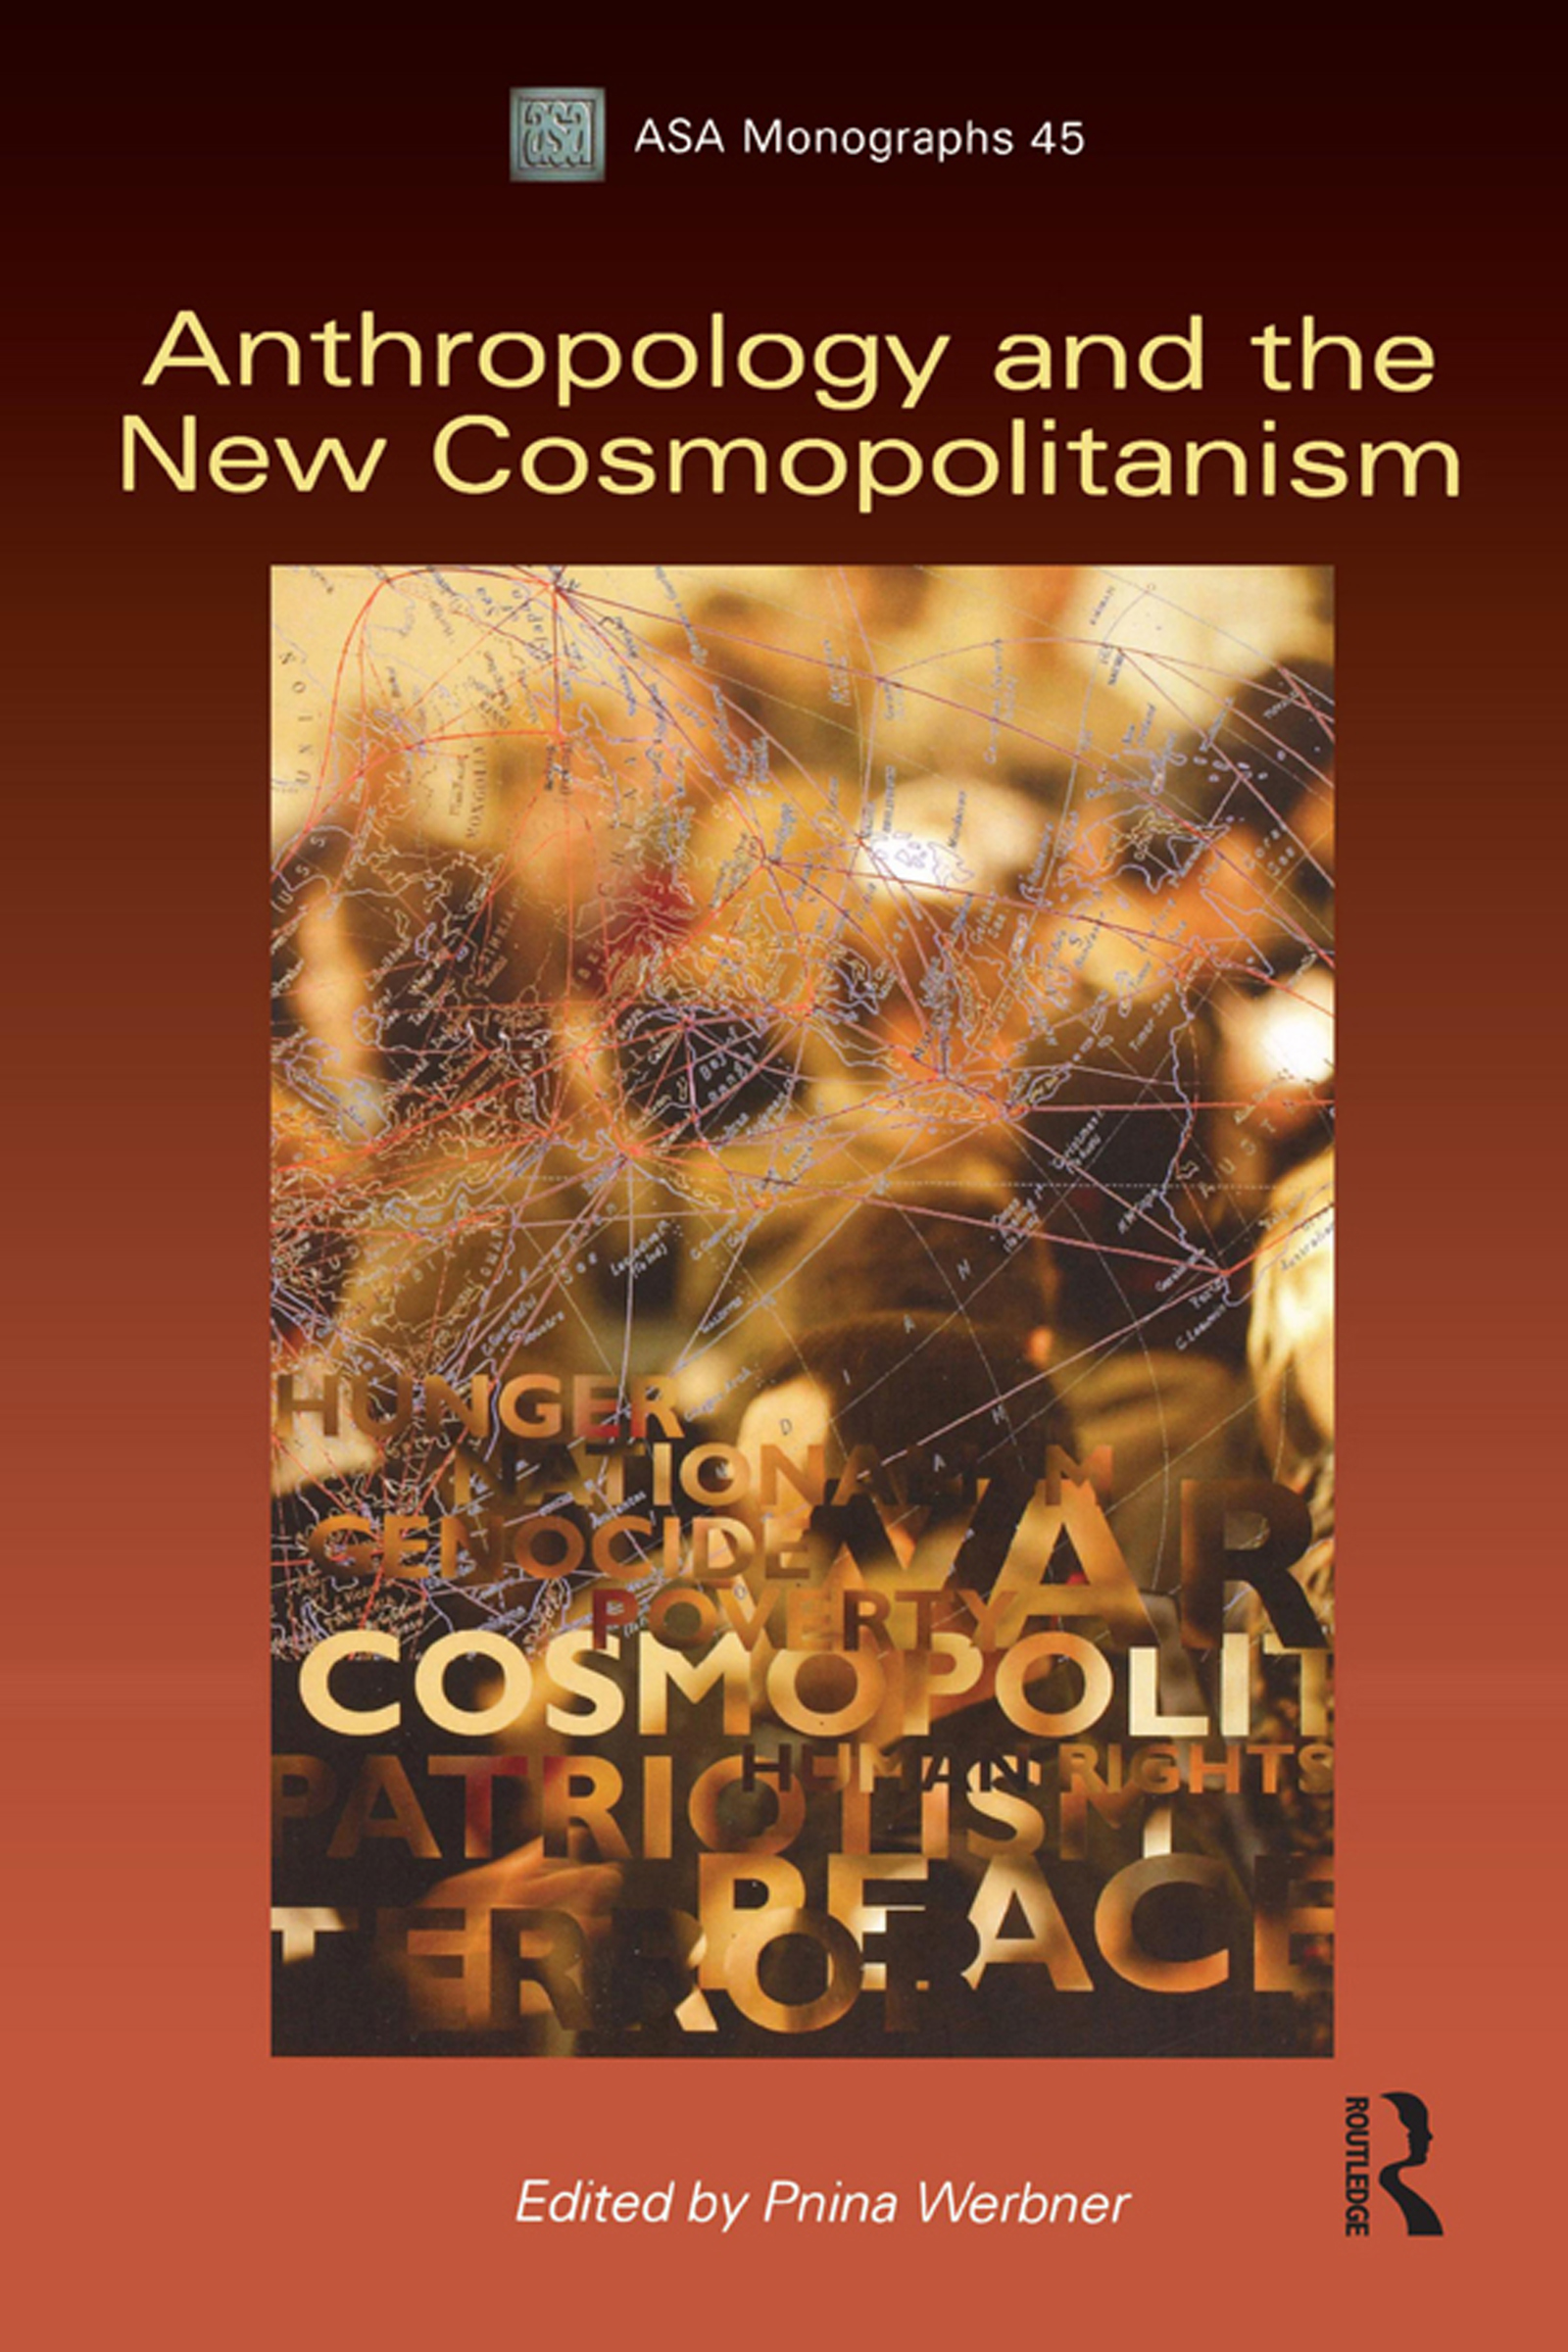 The Cosmopolitan Encounter: Social Anthropology and the Kindness of Strangers                            1